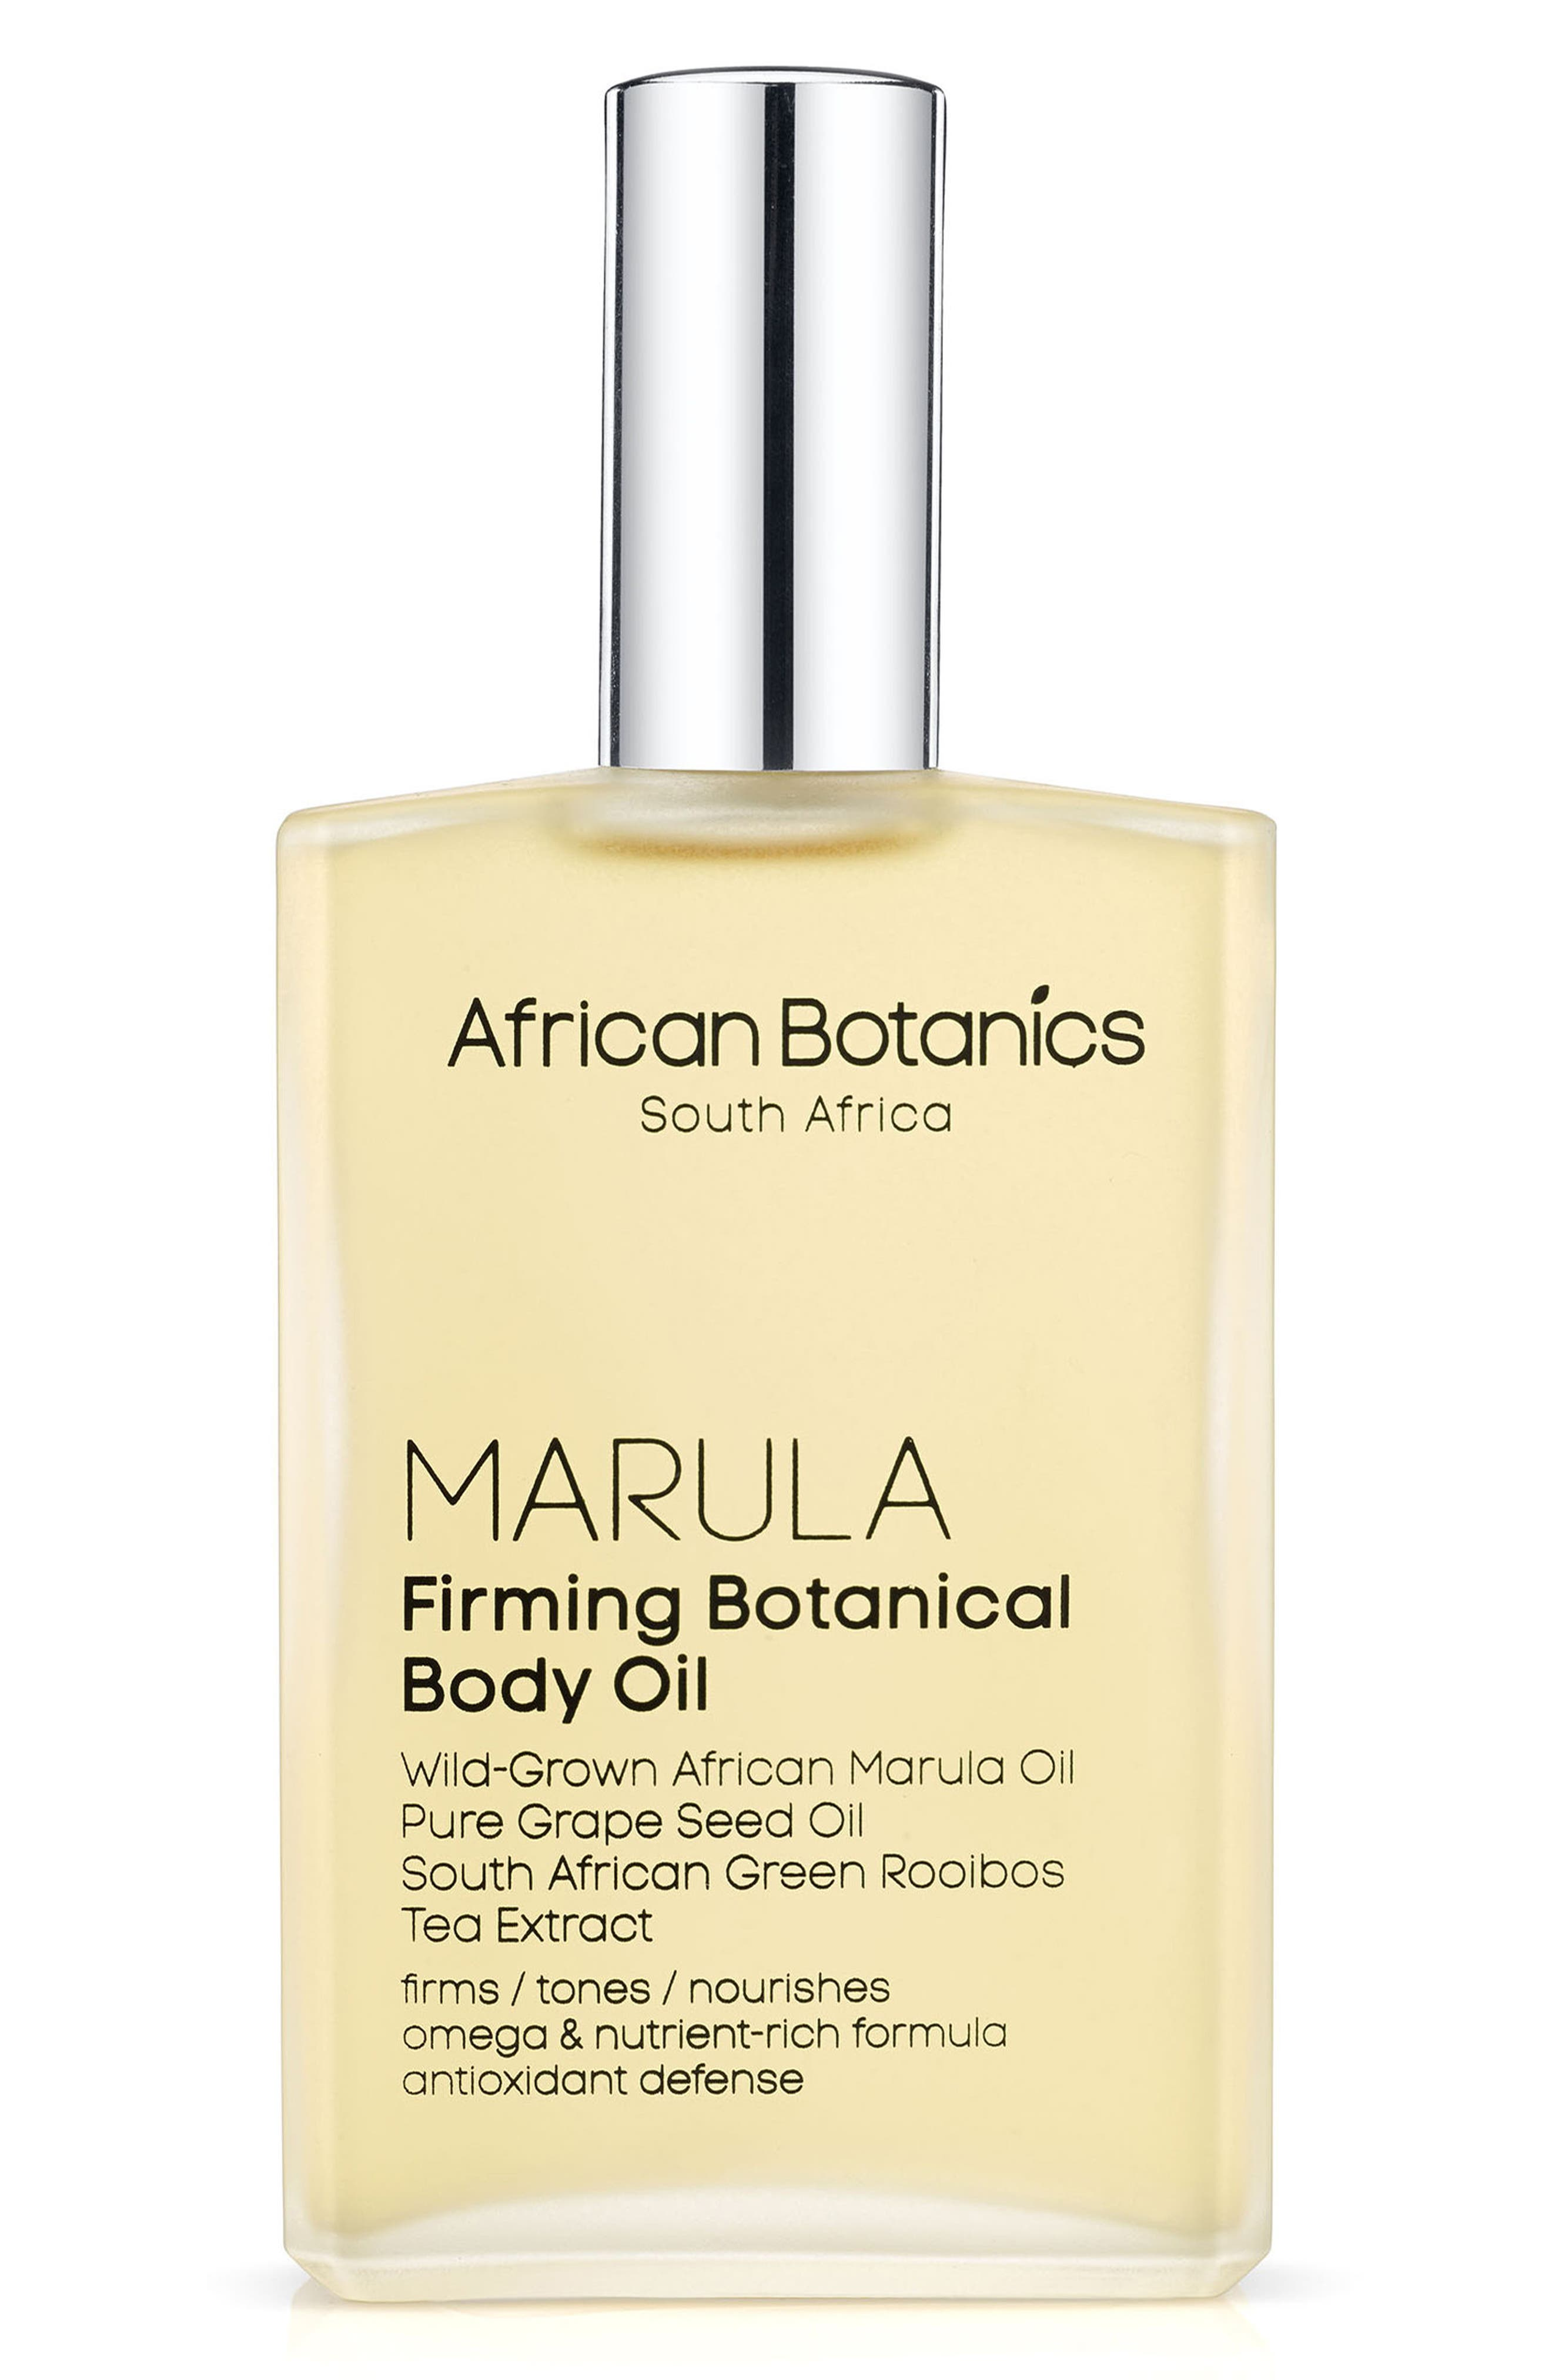 Marula Firming Botanical Body Oil,                             Main thumbnail 1, color,                             No Color